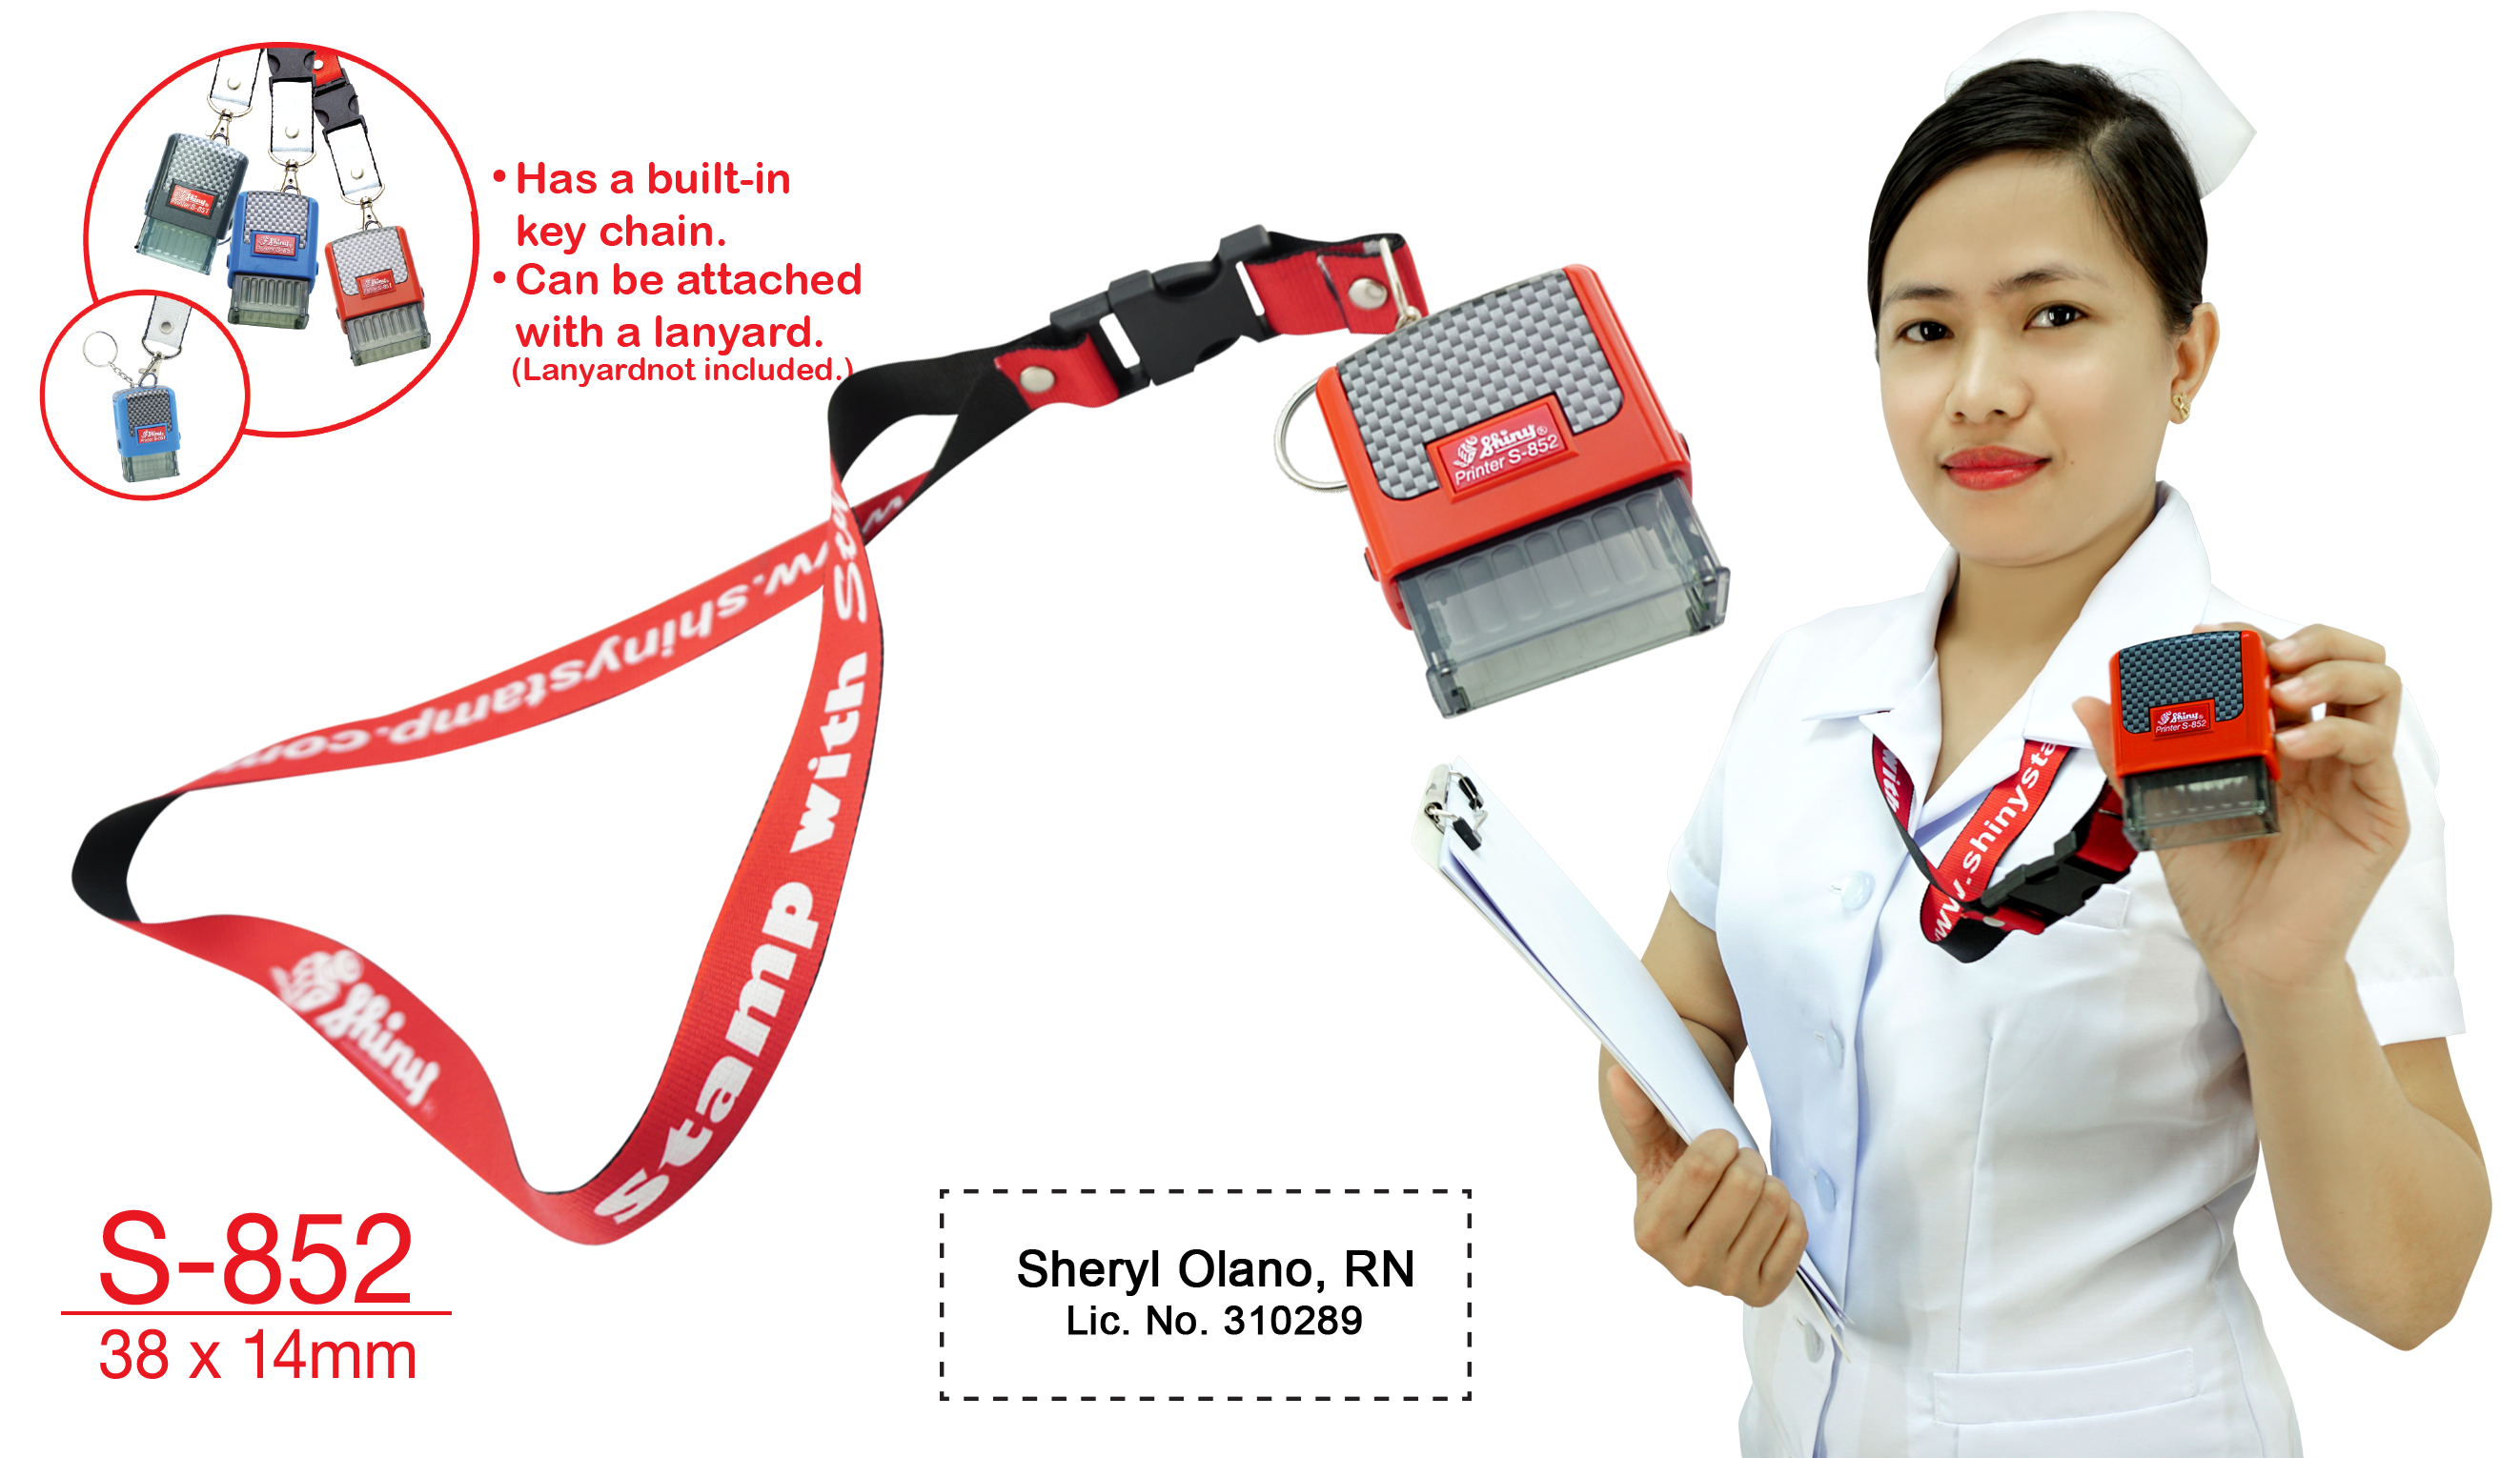 s-851 stamp with lanyard